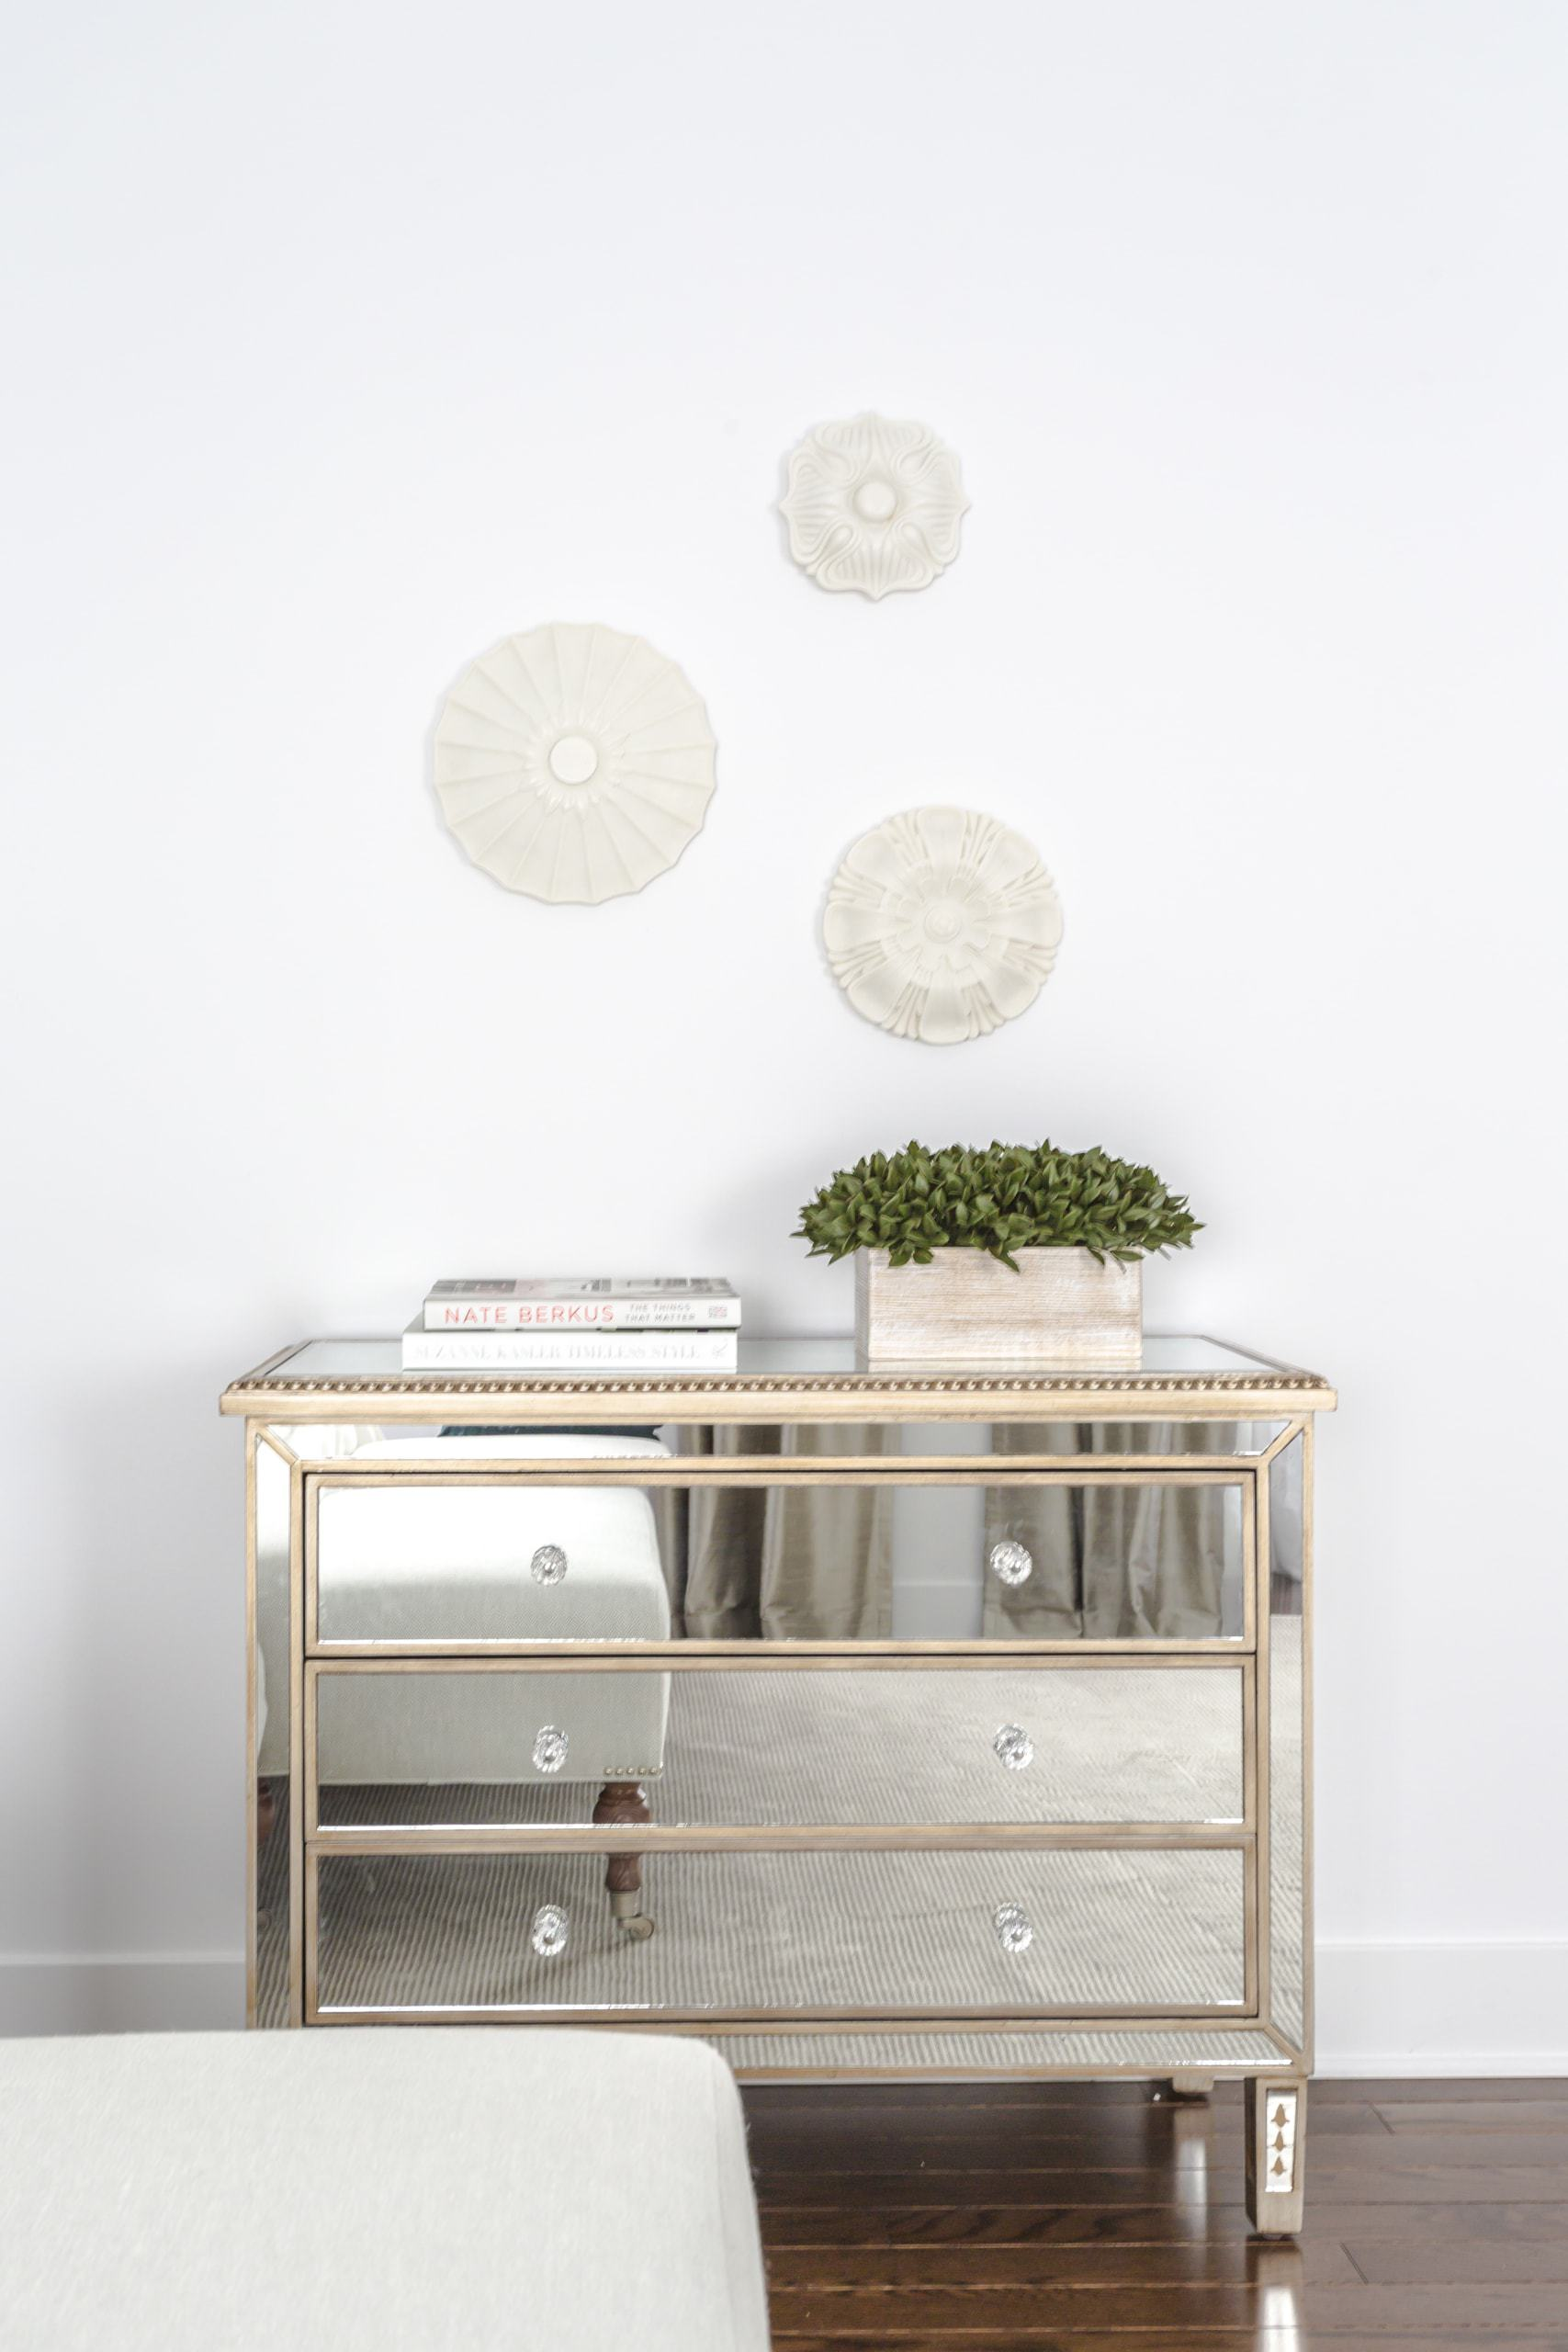 Small dresser that reflects light like a mirror